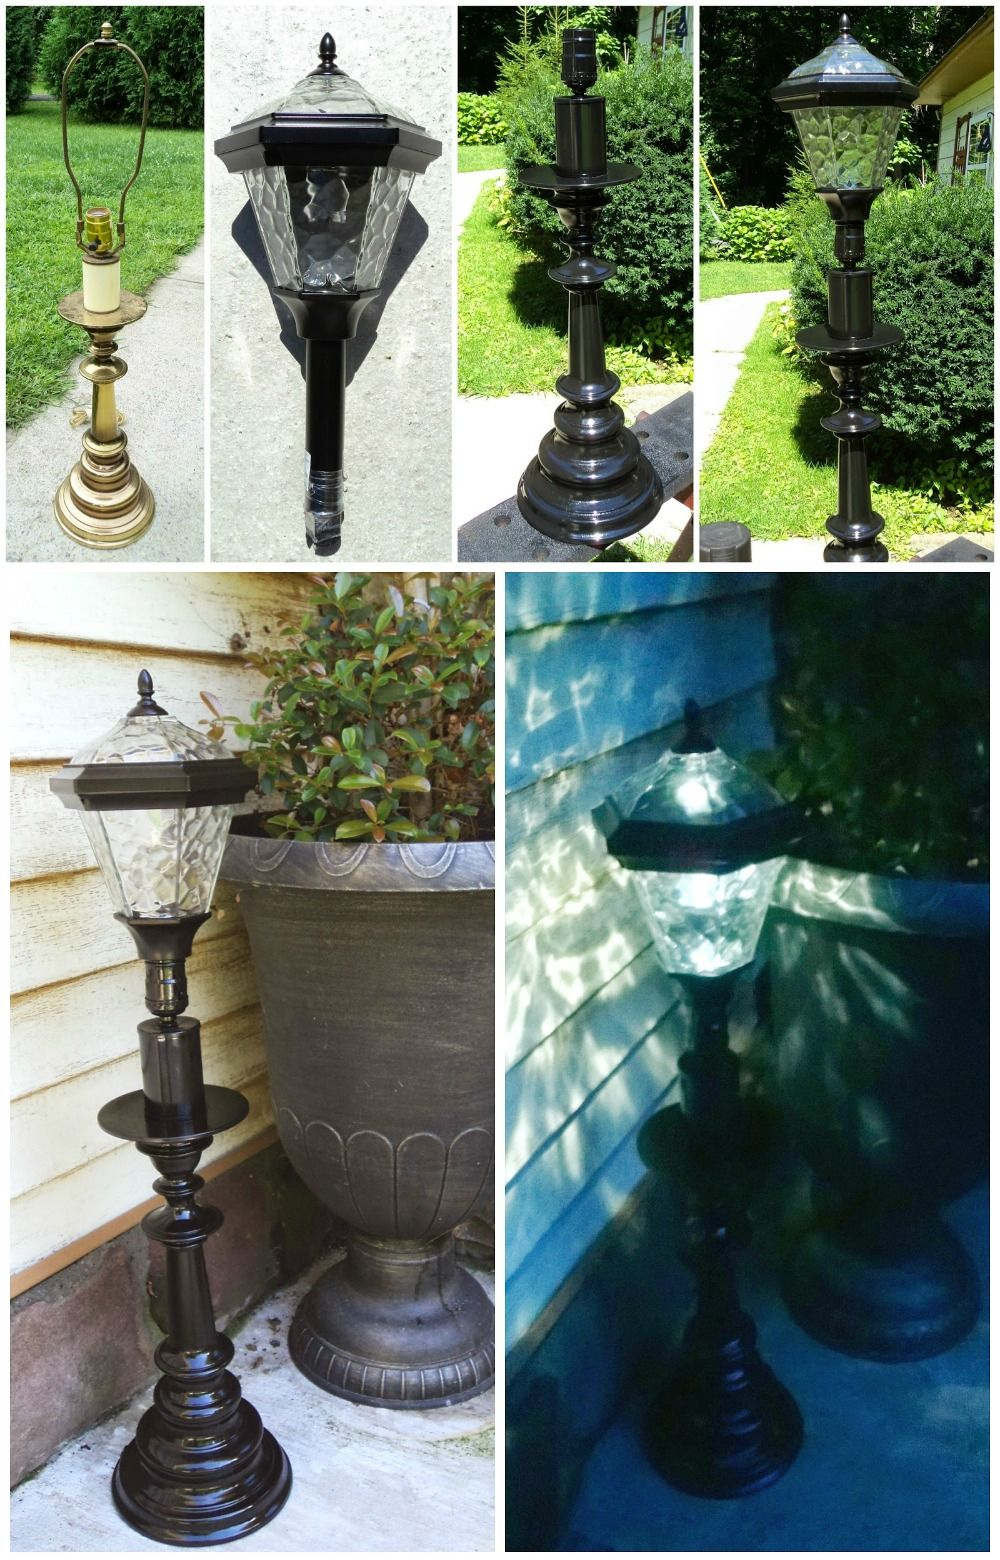 Spring Fever Wondrous Outdoor Lighting For 2017 Diy Outdoor Lighting Outdoor Solar Lights Solar Lights Garden